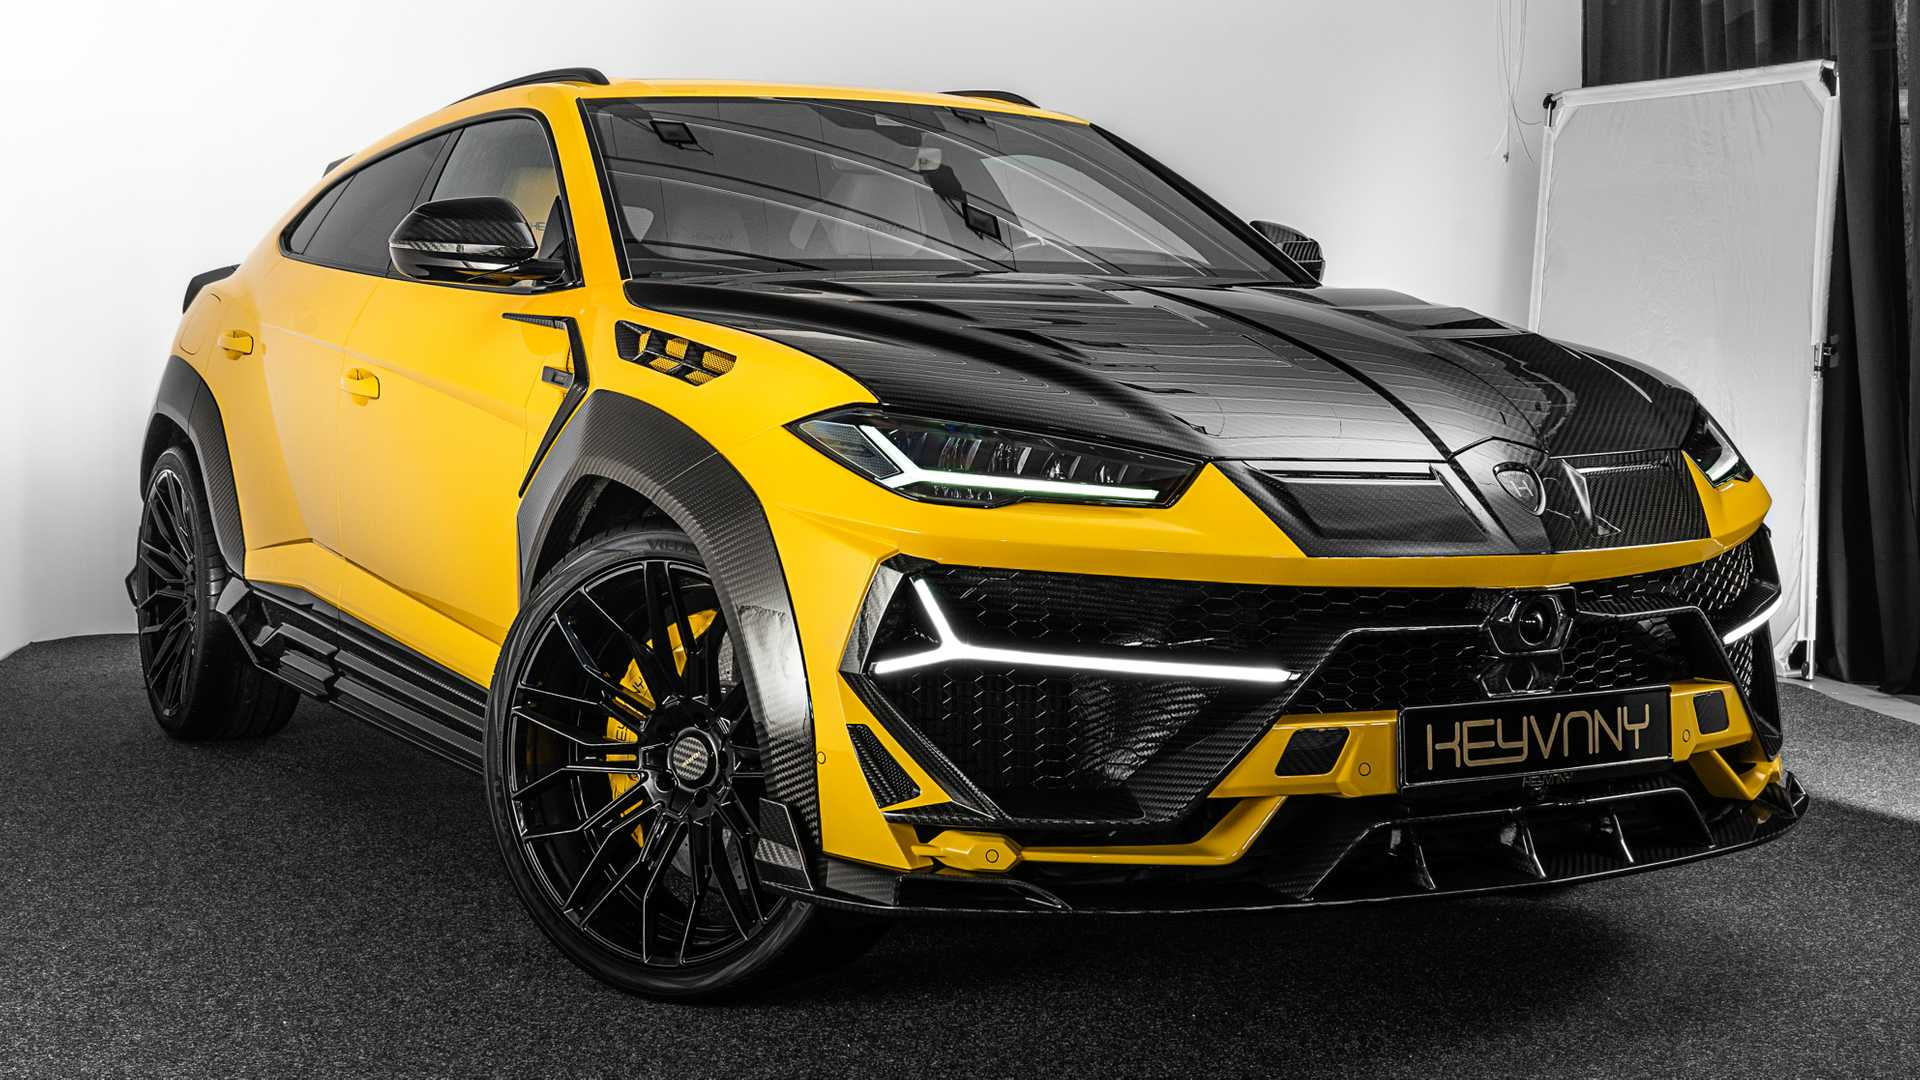 Most Popular Lamborghini Urus Bodykits in 2020/2021